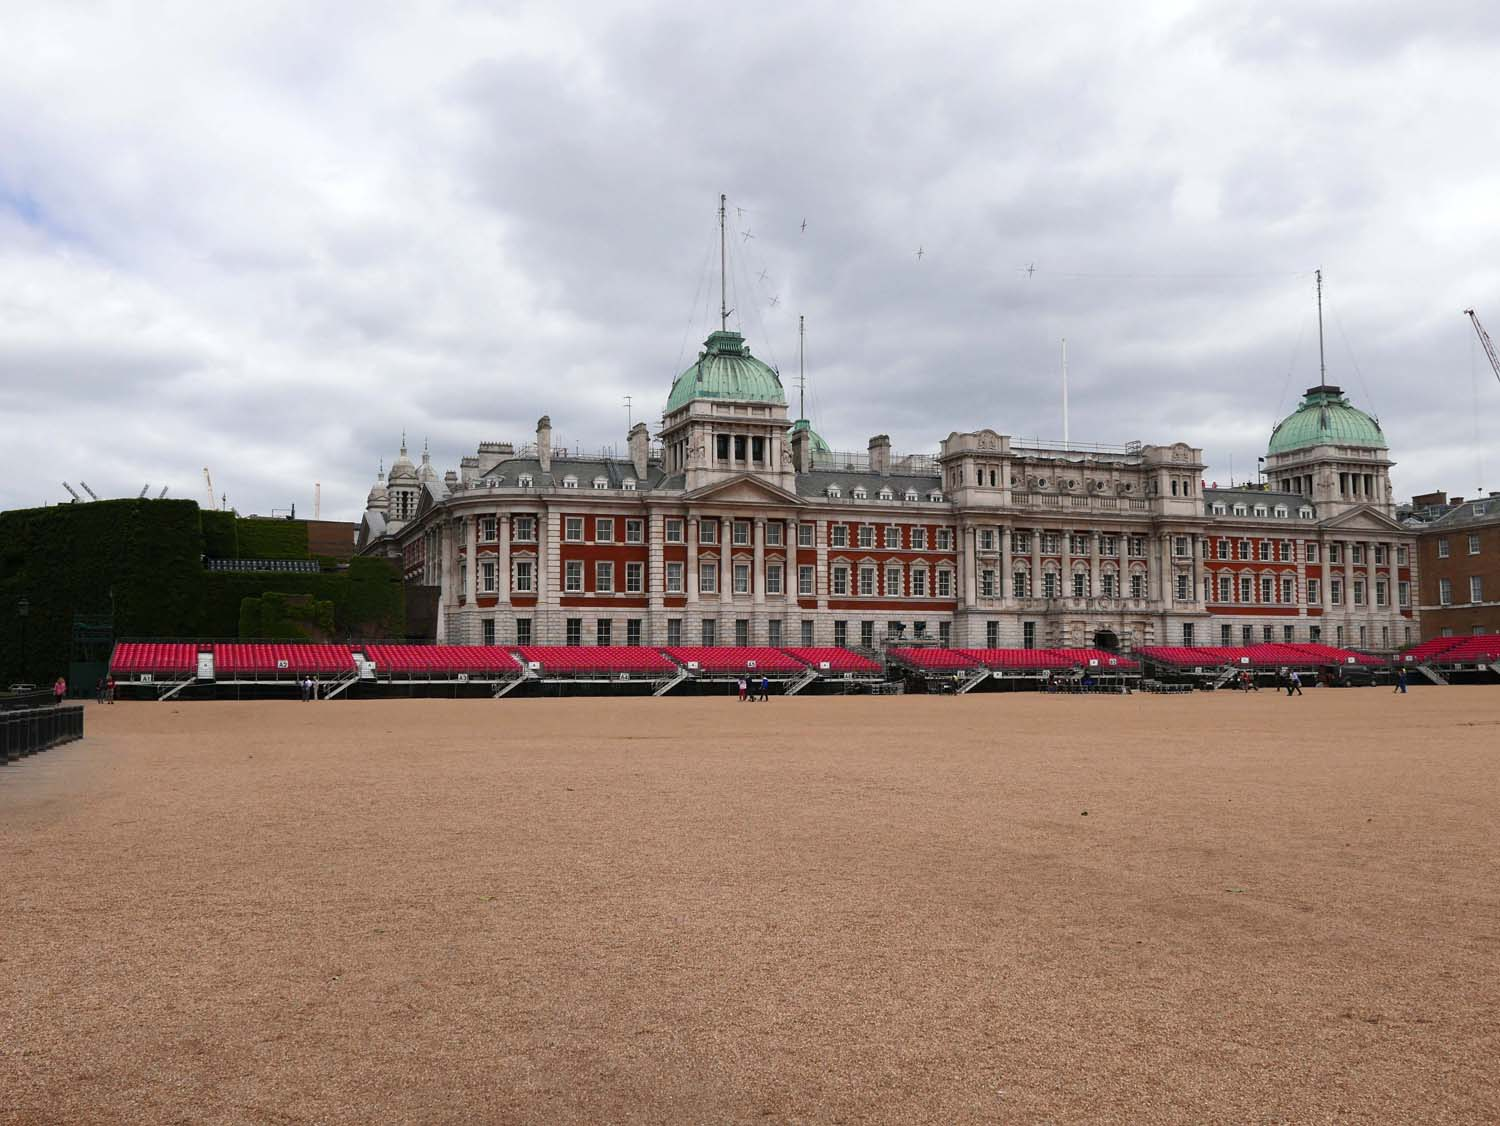 The Horse guard parade grounds